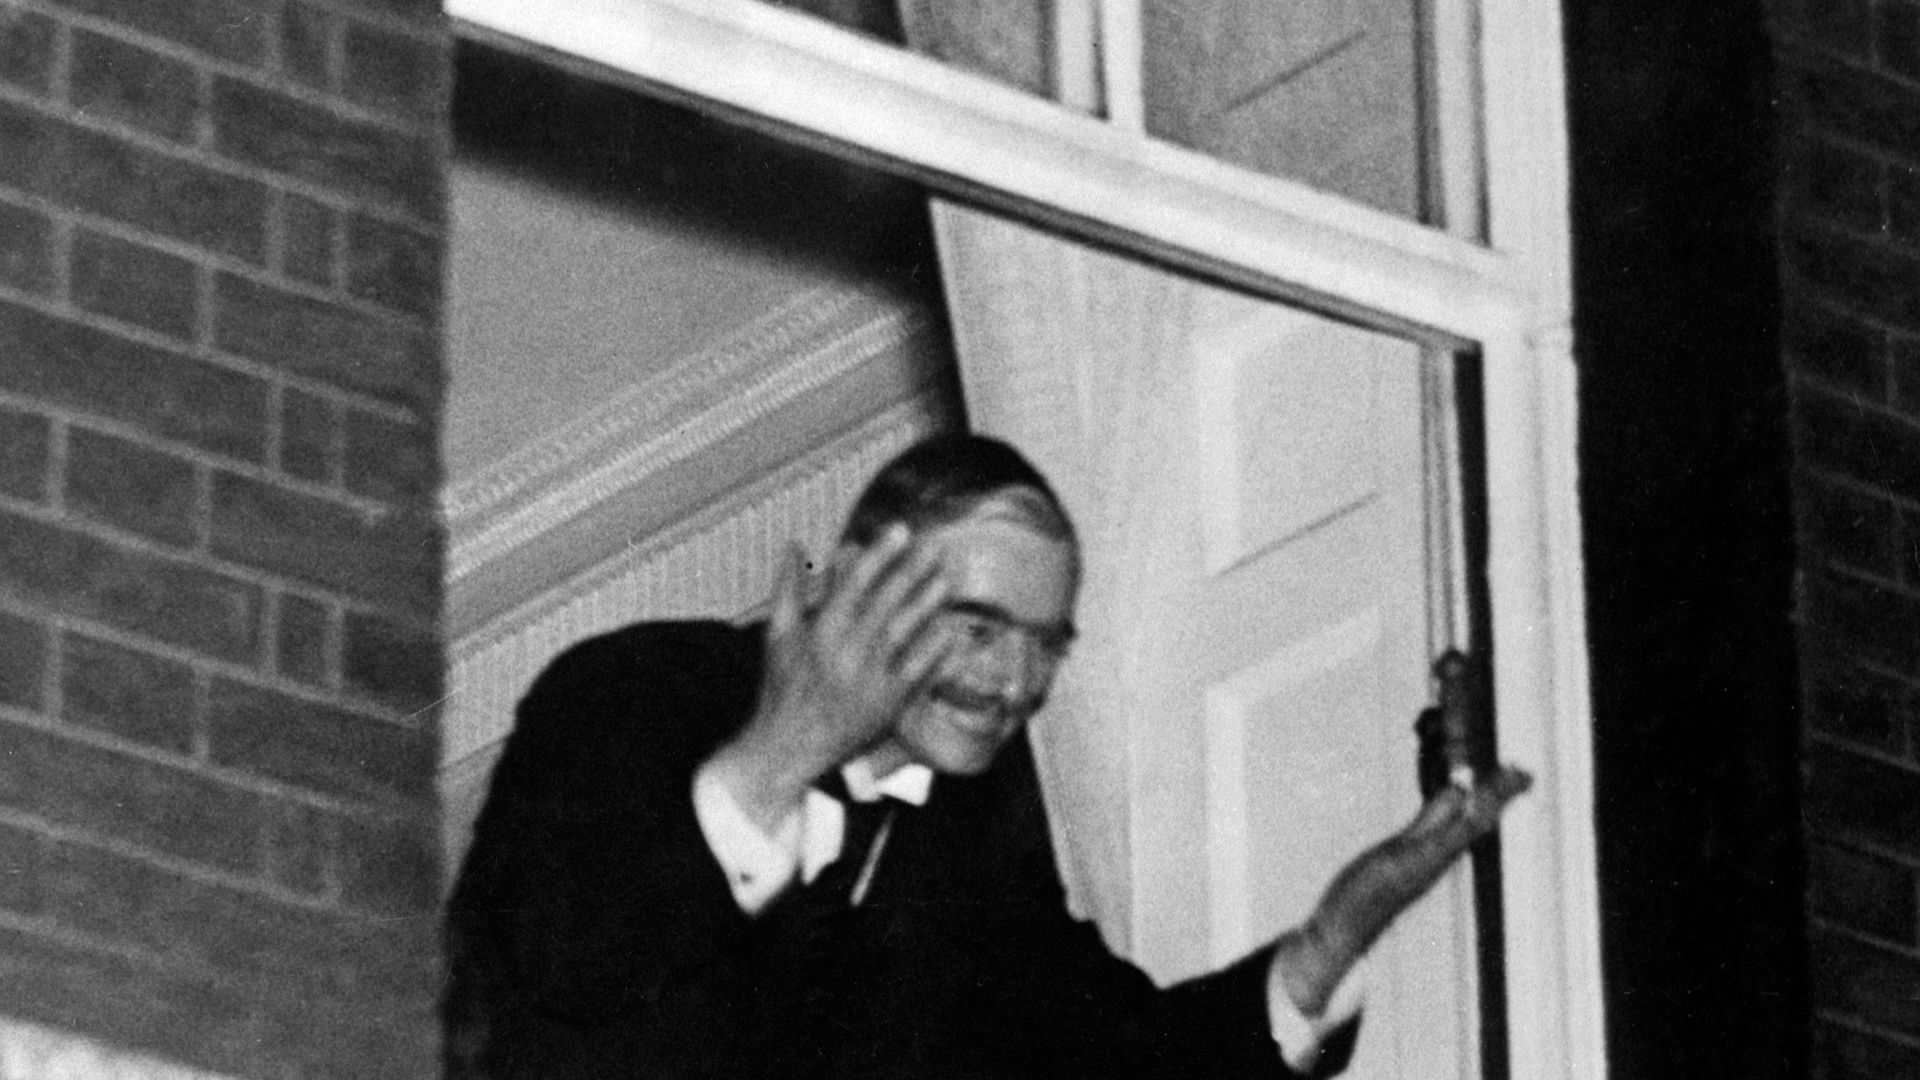 Neville Chamberlain waves to crowds from the window of No.10 after the Munich Agreement was signed. - Credit: PA